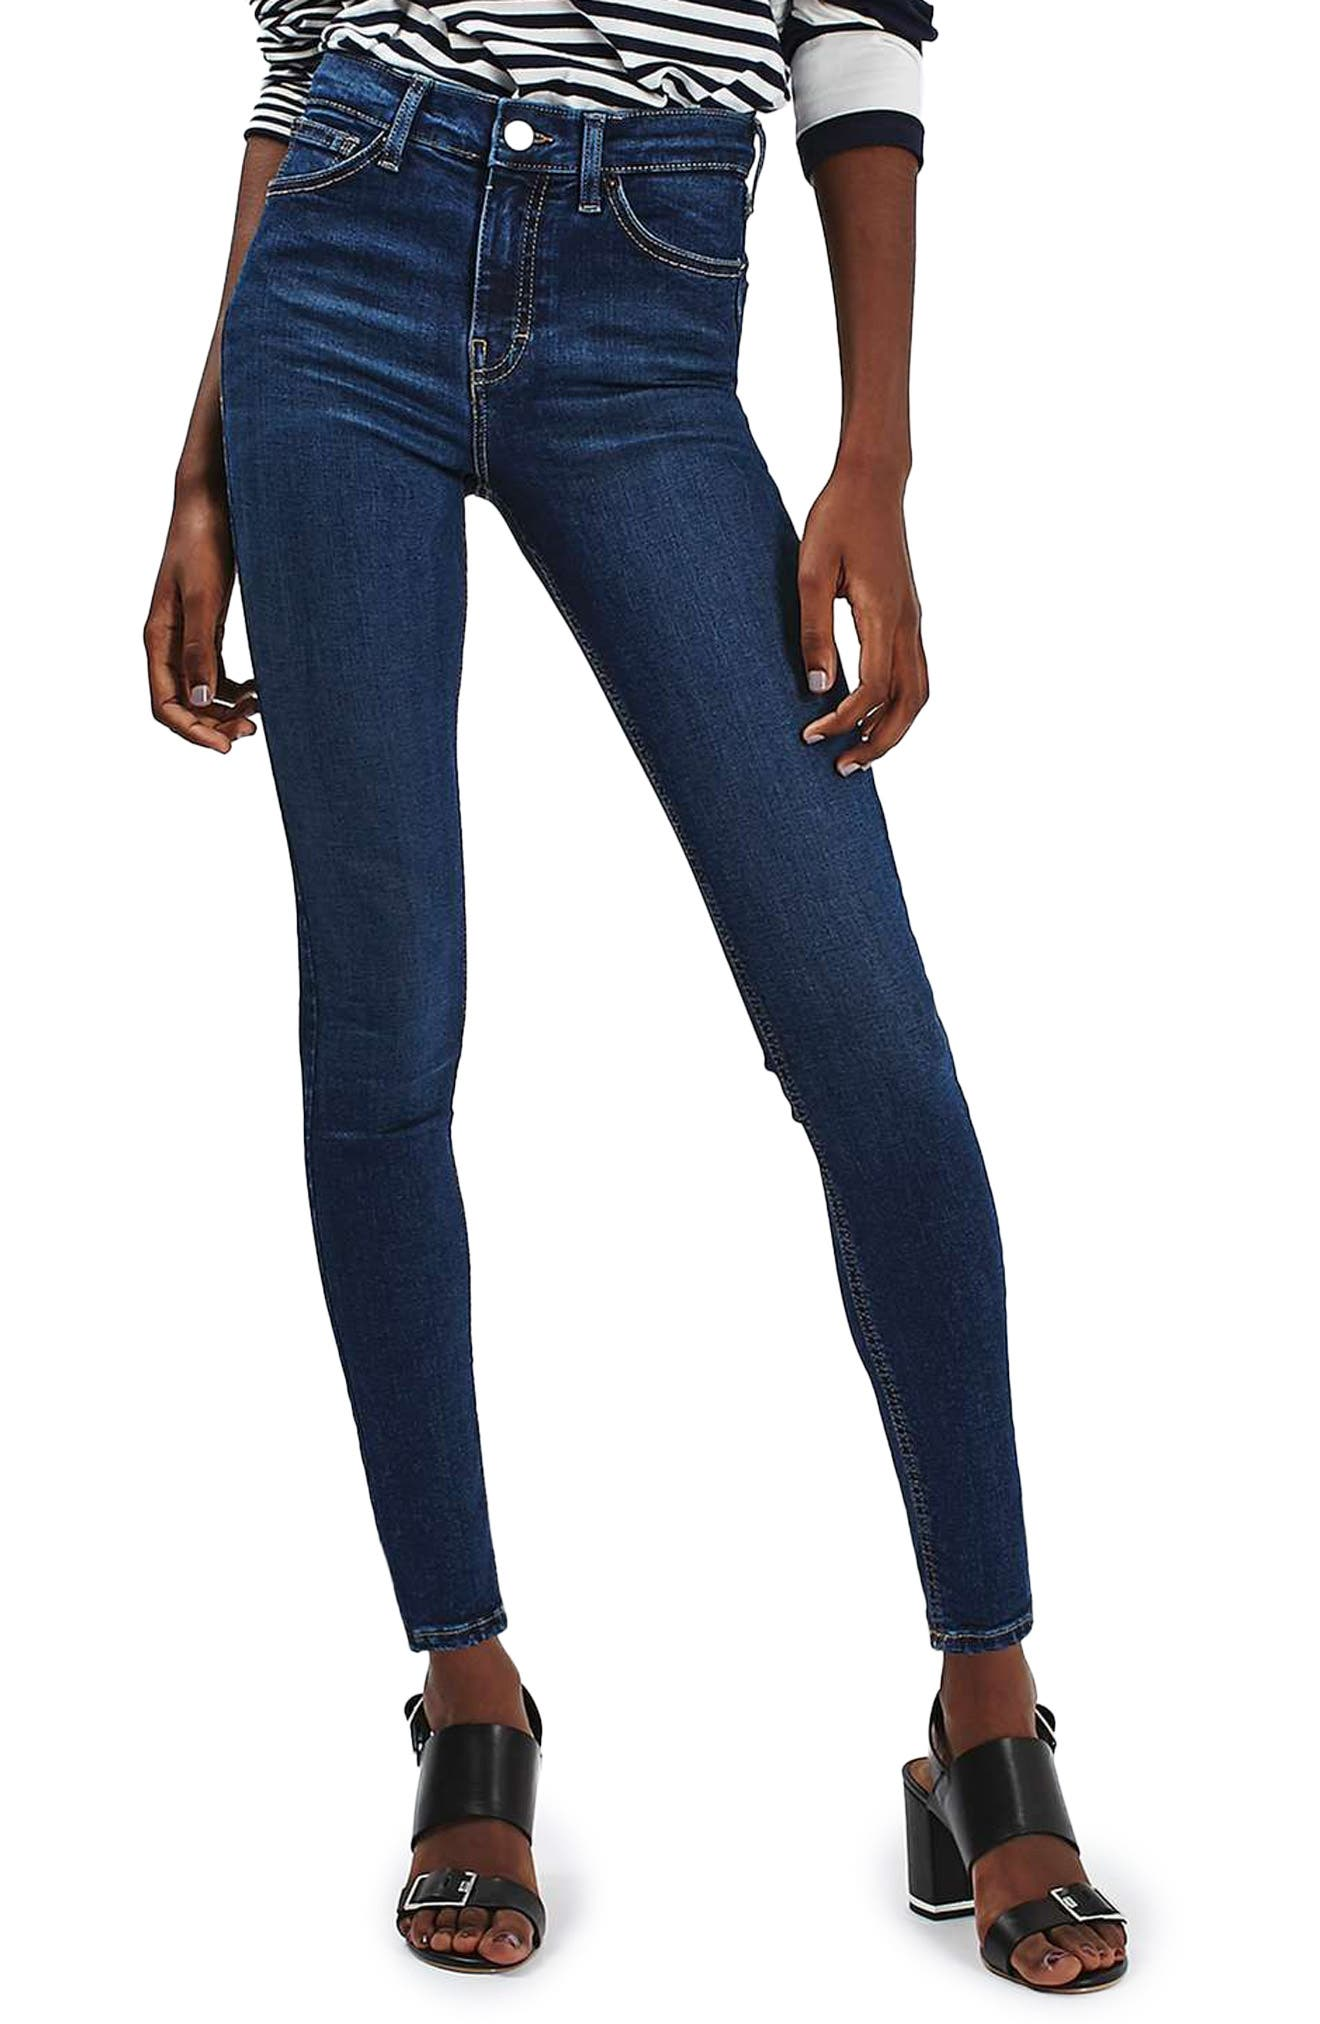 TOPSHOP, Jamie High Waist Ankle Skinny Jeans, Main thumbnail 1, color, 401